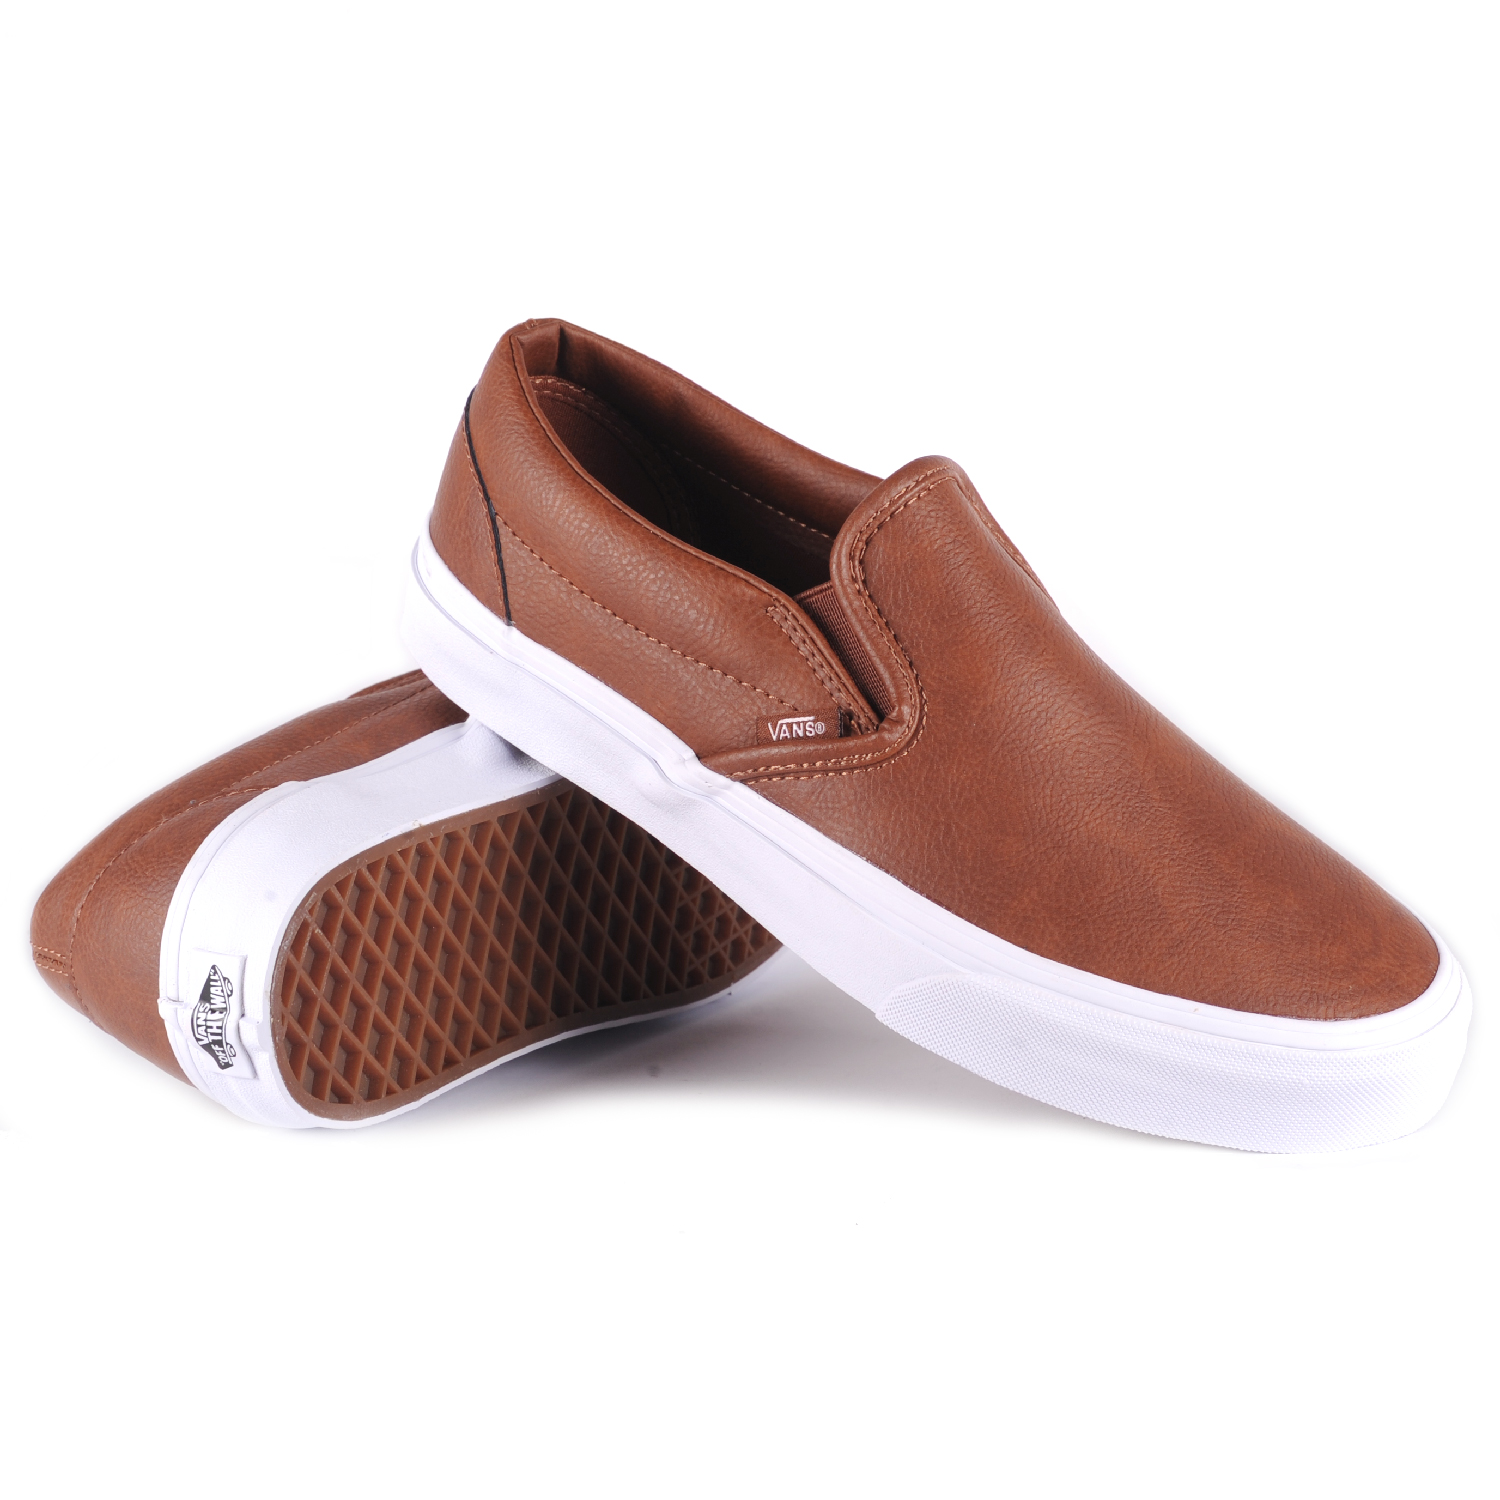 vans classic slip on leather brown s skate shoes ebay